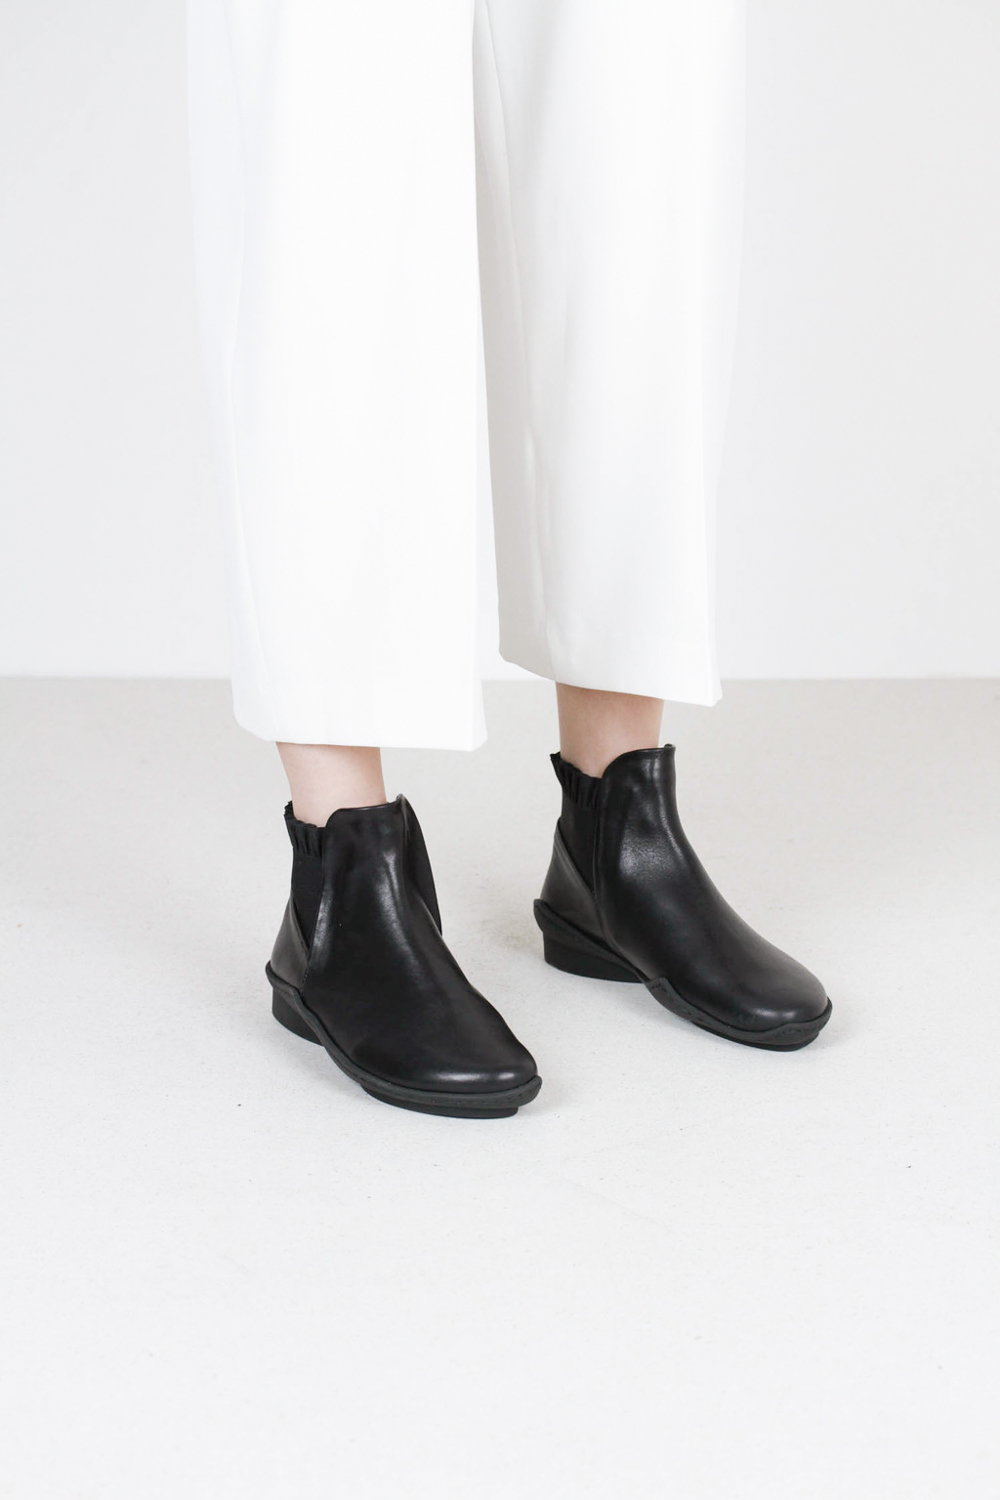 Trippen s%c3%b6ckchen f lxp blk leather shoes